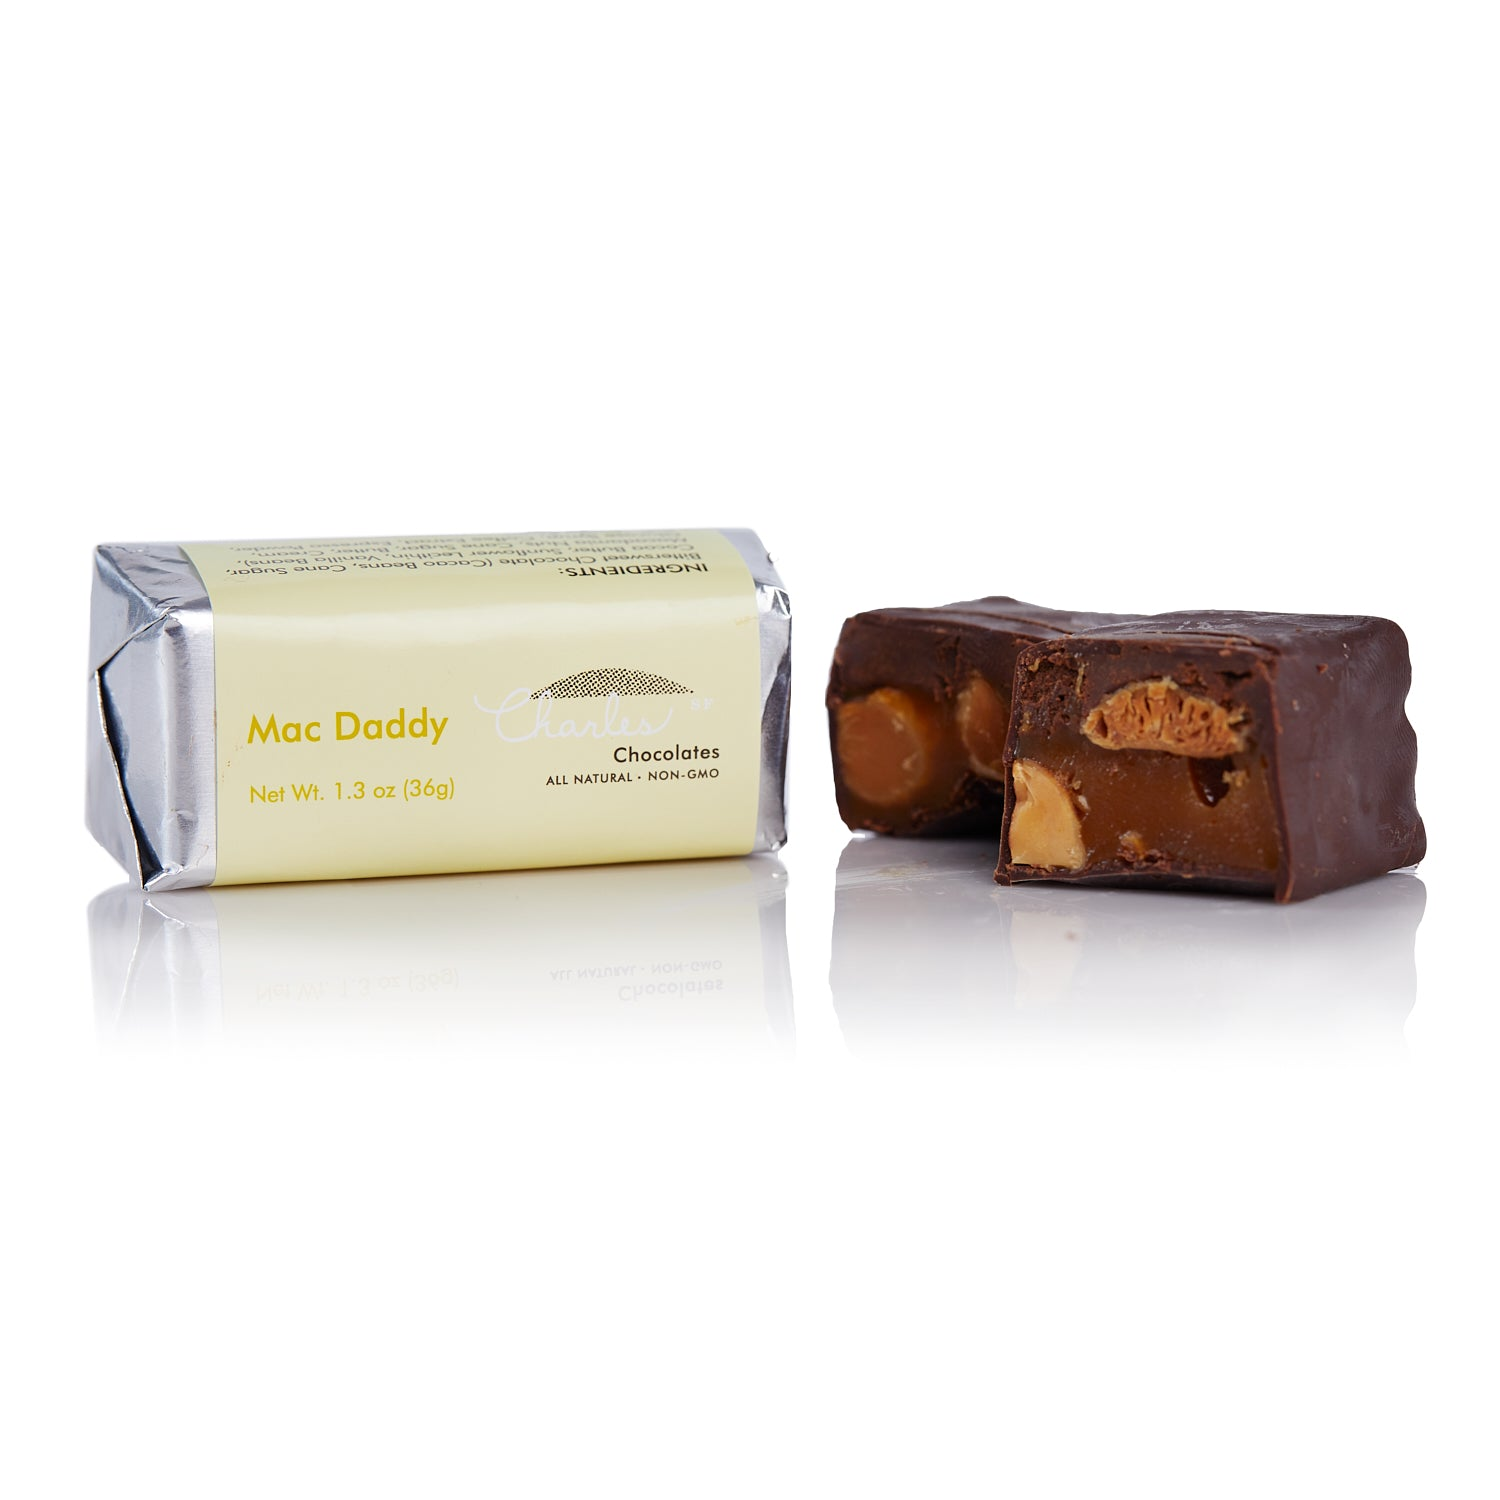 Charles Chocolates, Mac Daddy Mini Macadamia Nut Bar